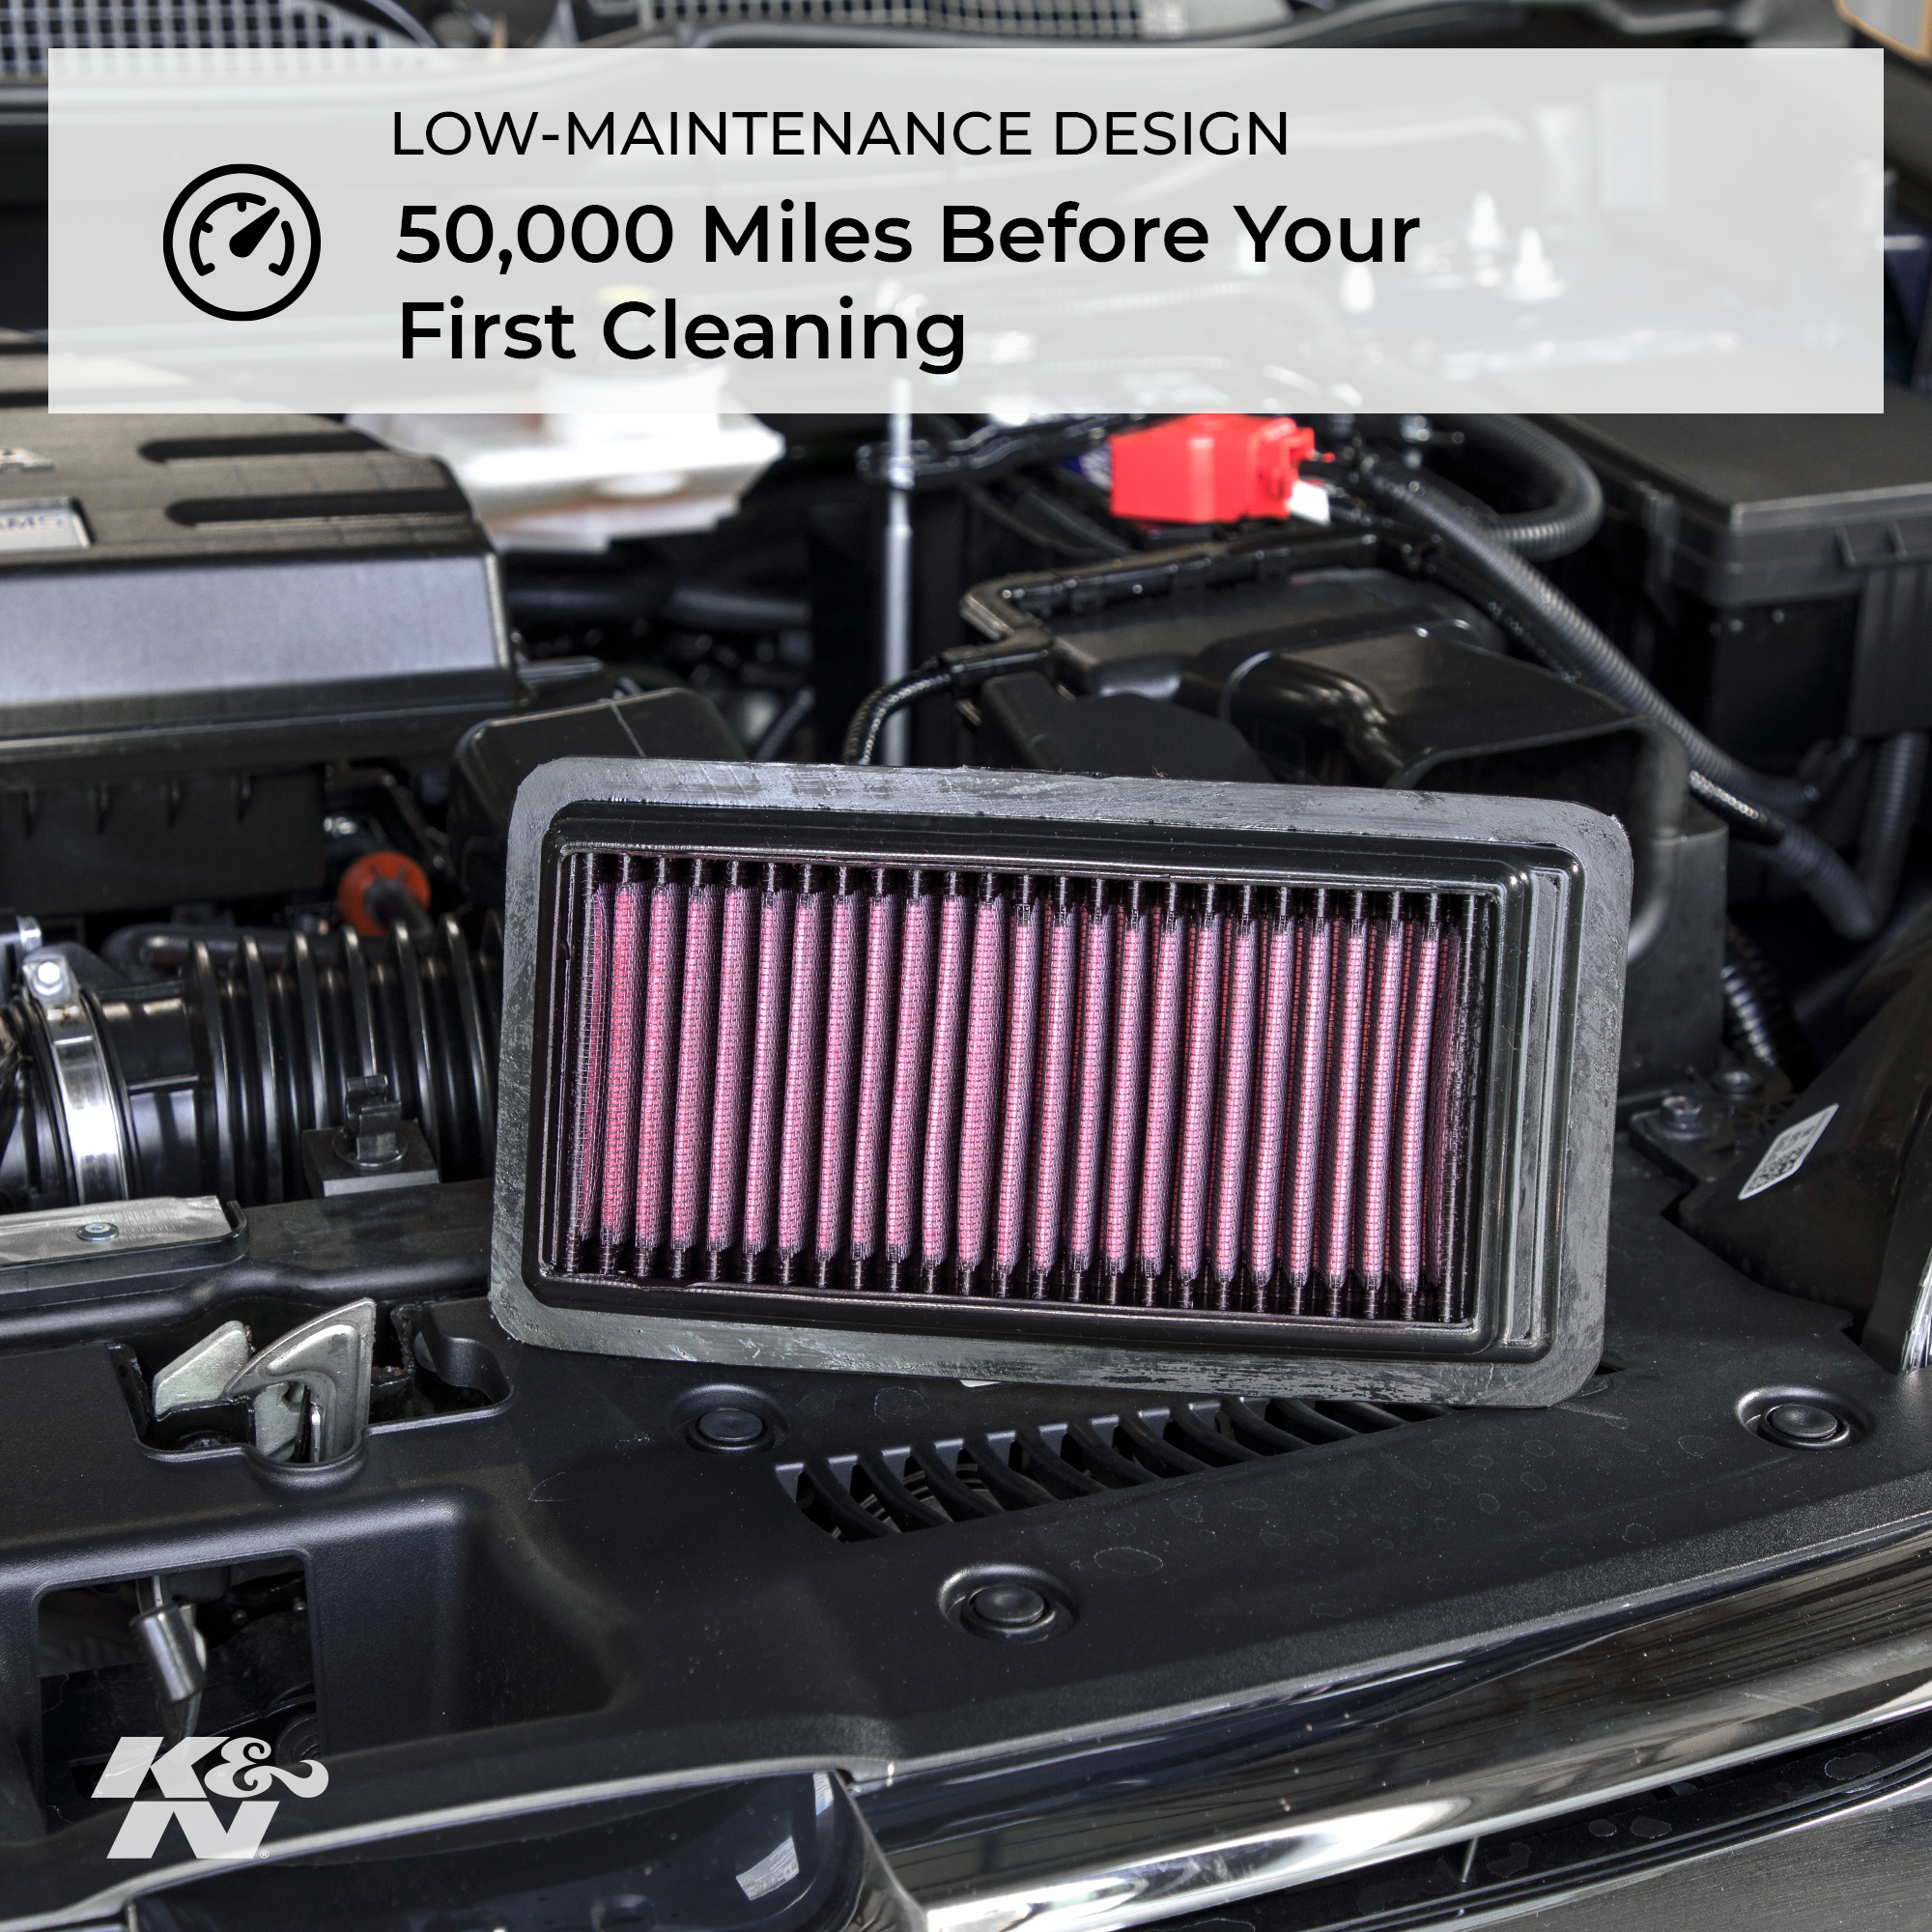 Premium Quality Air Filter For 2012 Infiniti G37 Note: Product Height: 1.34, Product O.D.: 79, Product I.D.: 6.5 GKI